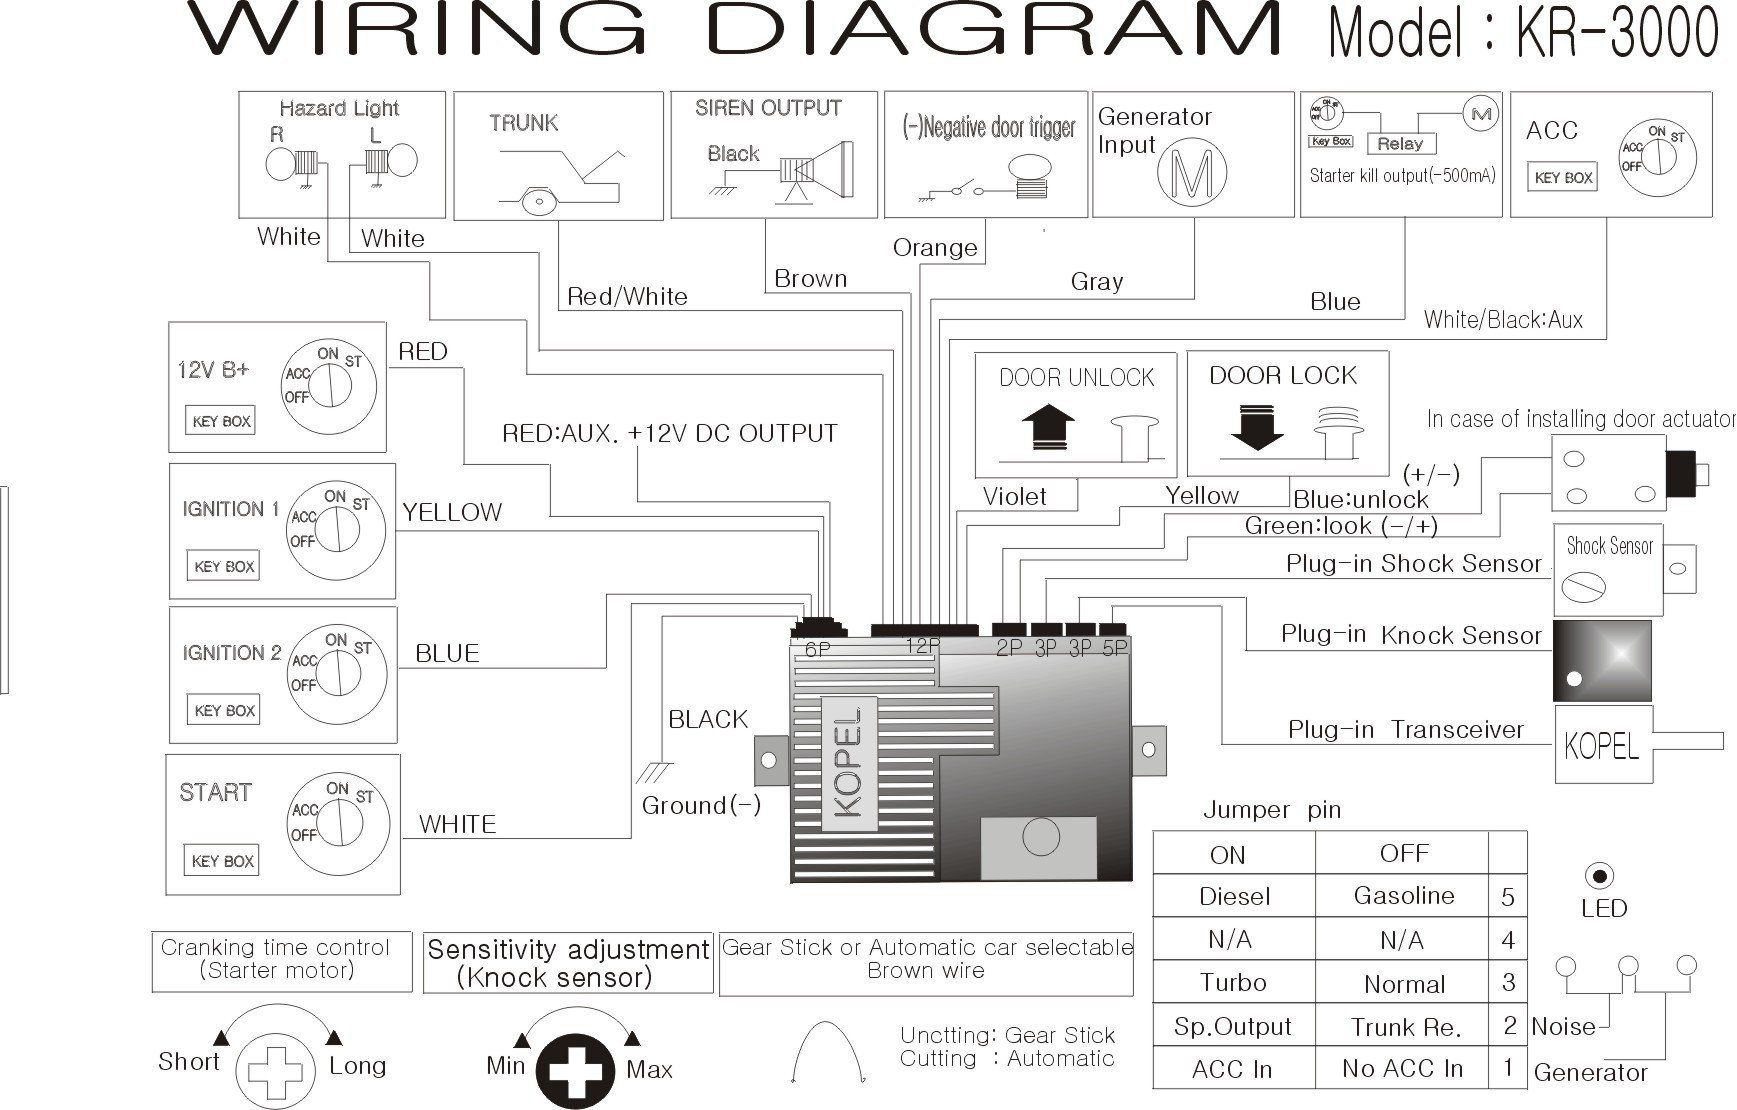 The12Volt Com Wiring Diagrams Awesome Luxury The12Volt Wiring With - The12Volt.com Wiring Diagram